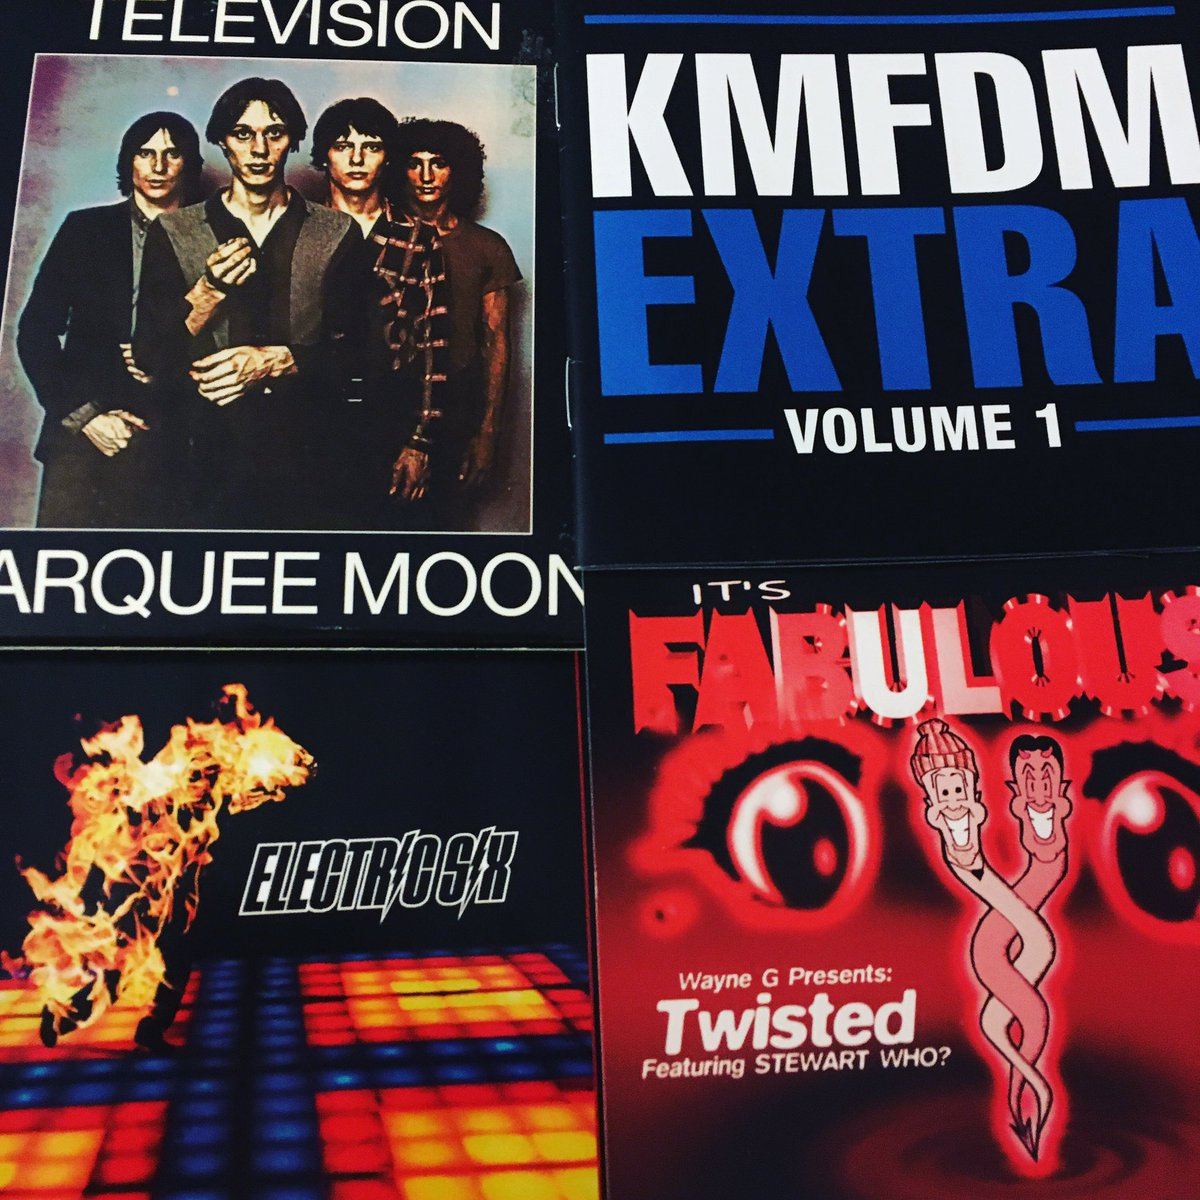 Adding more discs to the digital cache. Wanna hear anything from these? Tune in tonight from 7-11 Central and we can make it happen. twitch.tv/soundawakeradio